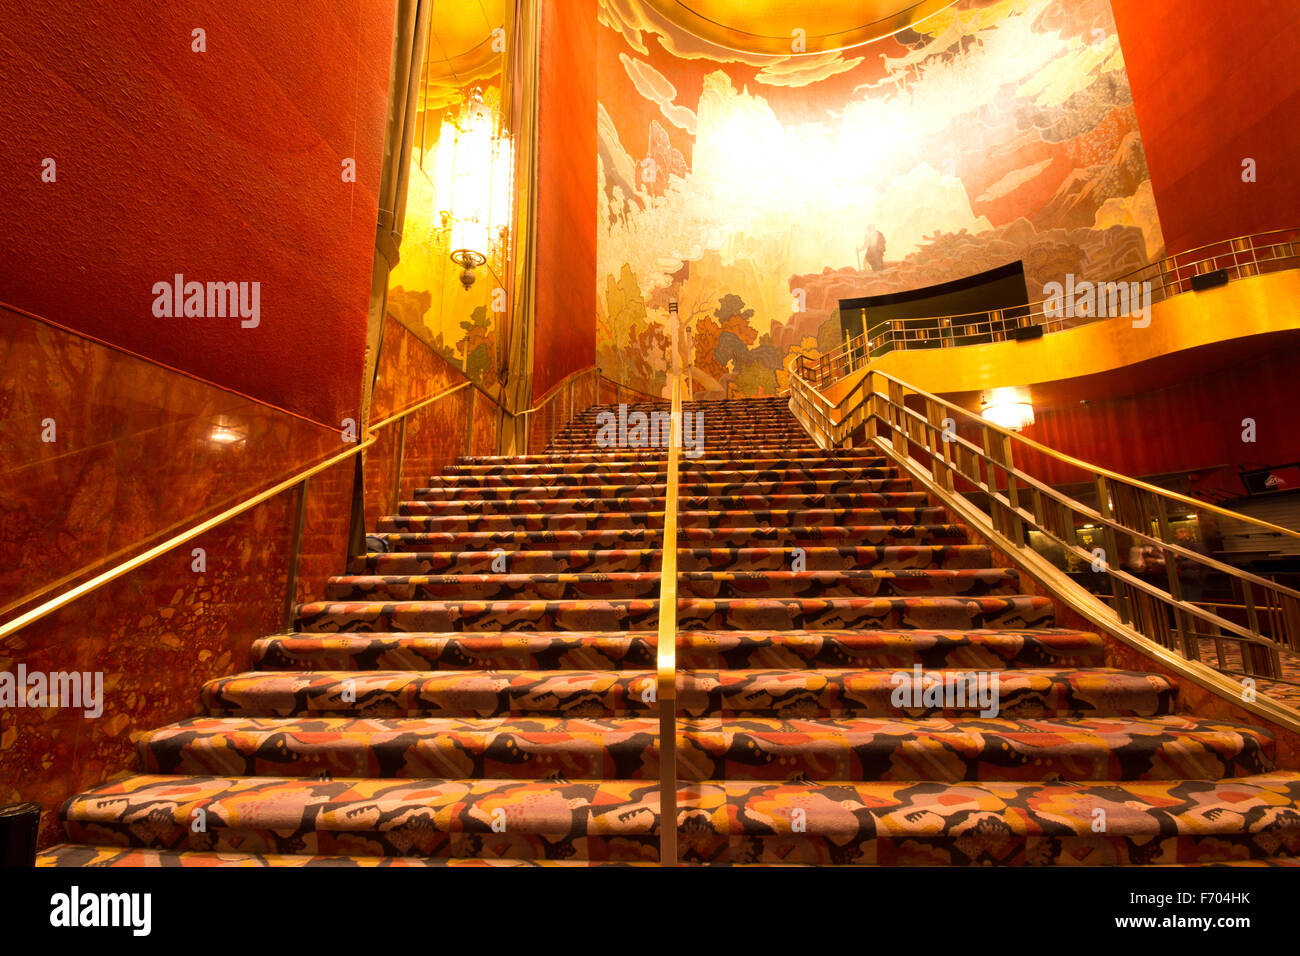 View of staircase at historic Radio City Music Hall in New York City - Stock Image